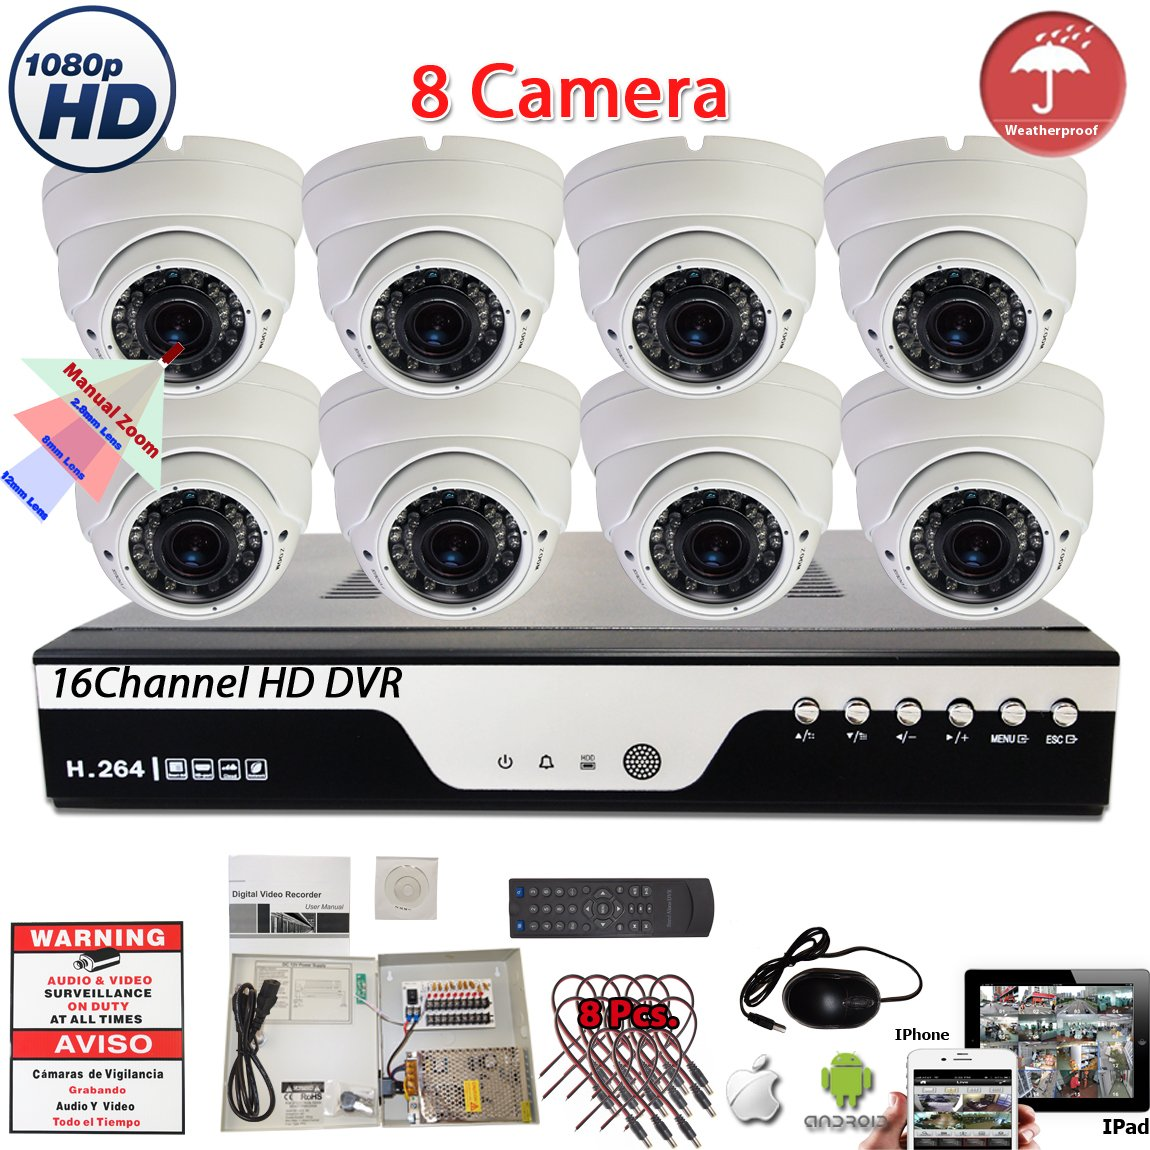 Amazon.com : Evertech 16 Channel H.264 HD DVR 8x 4in1 1080P Manual Zoom AHD TVI CVI Analog Varifocal Easy Remote Access by MobilePhones CCTV Home Security ...